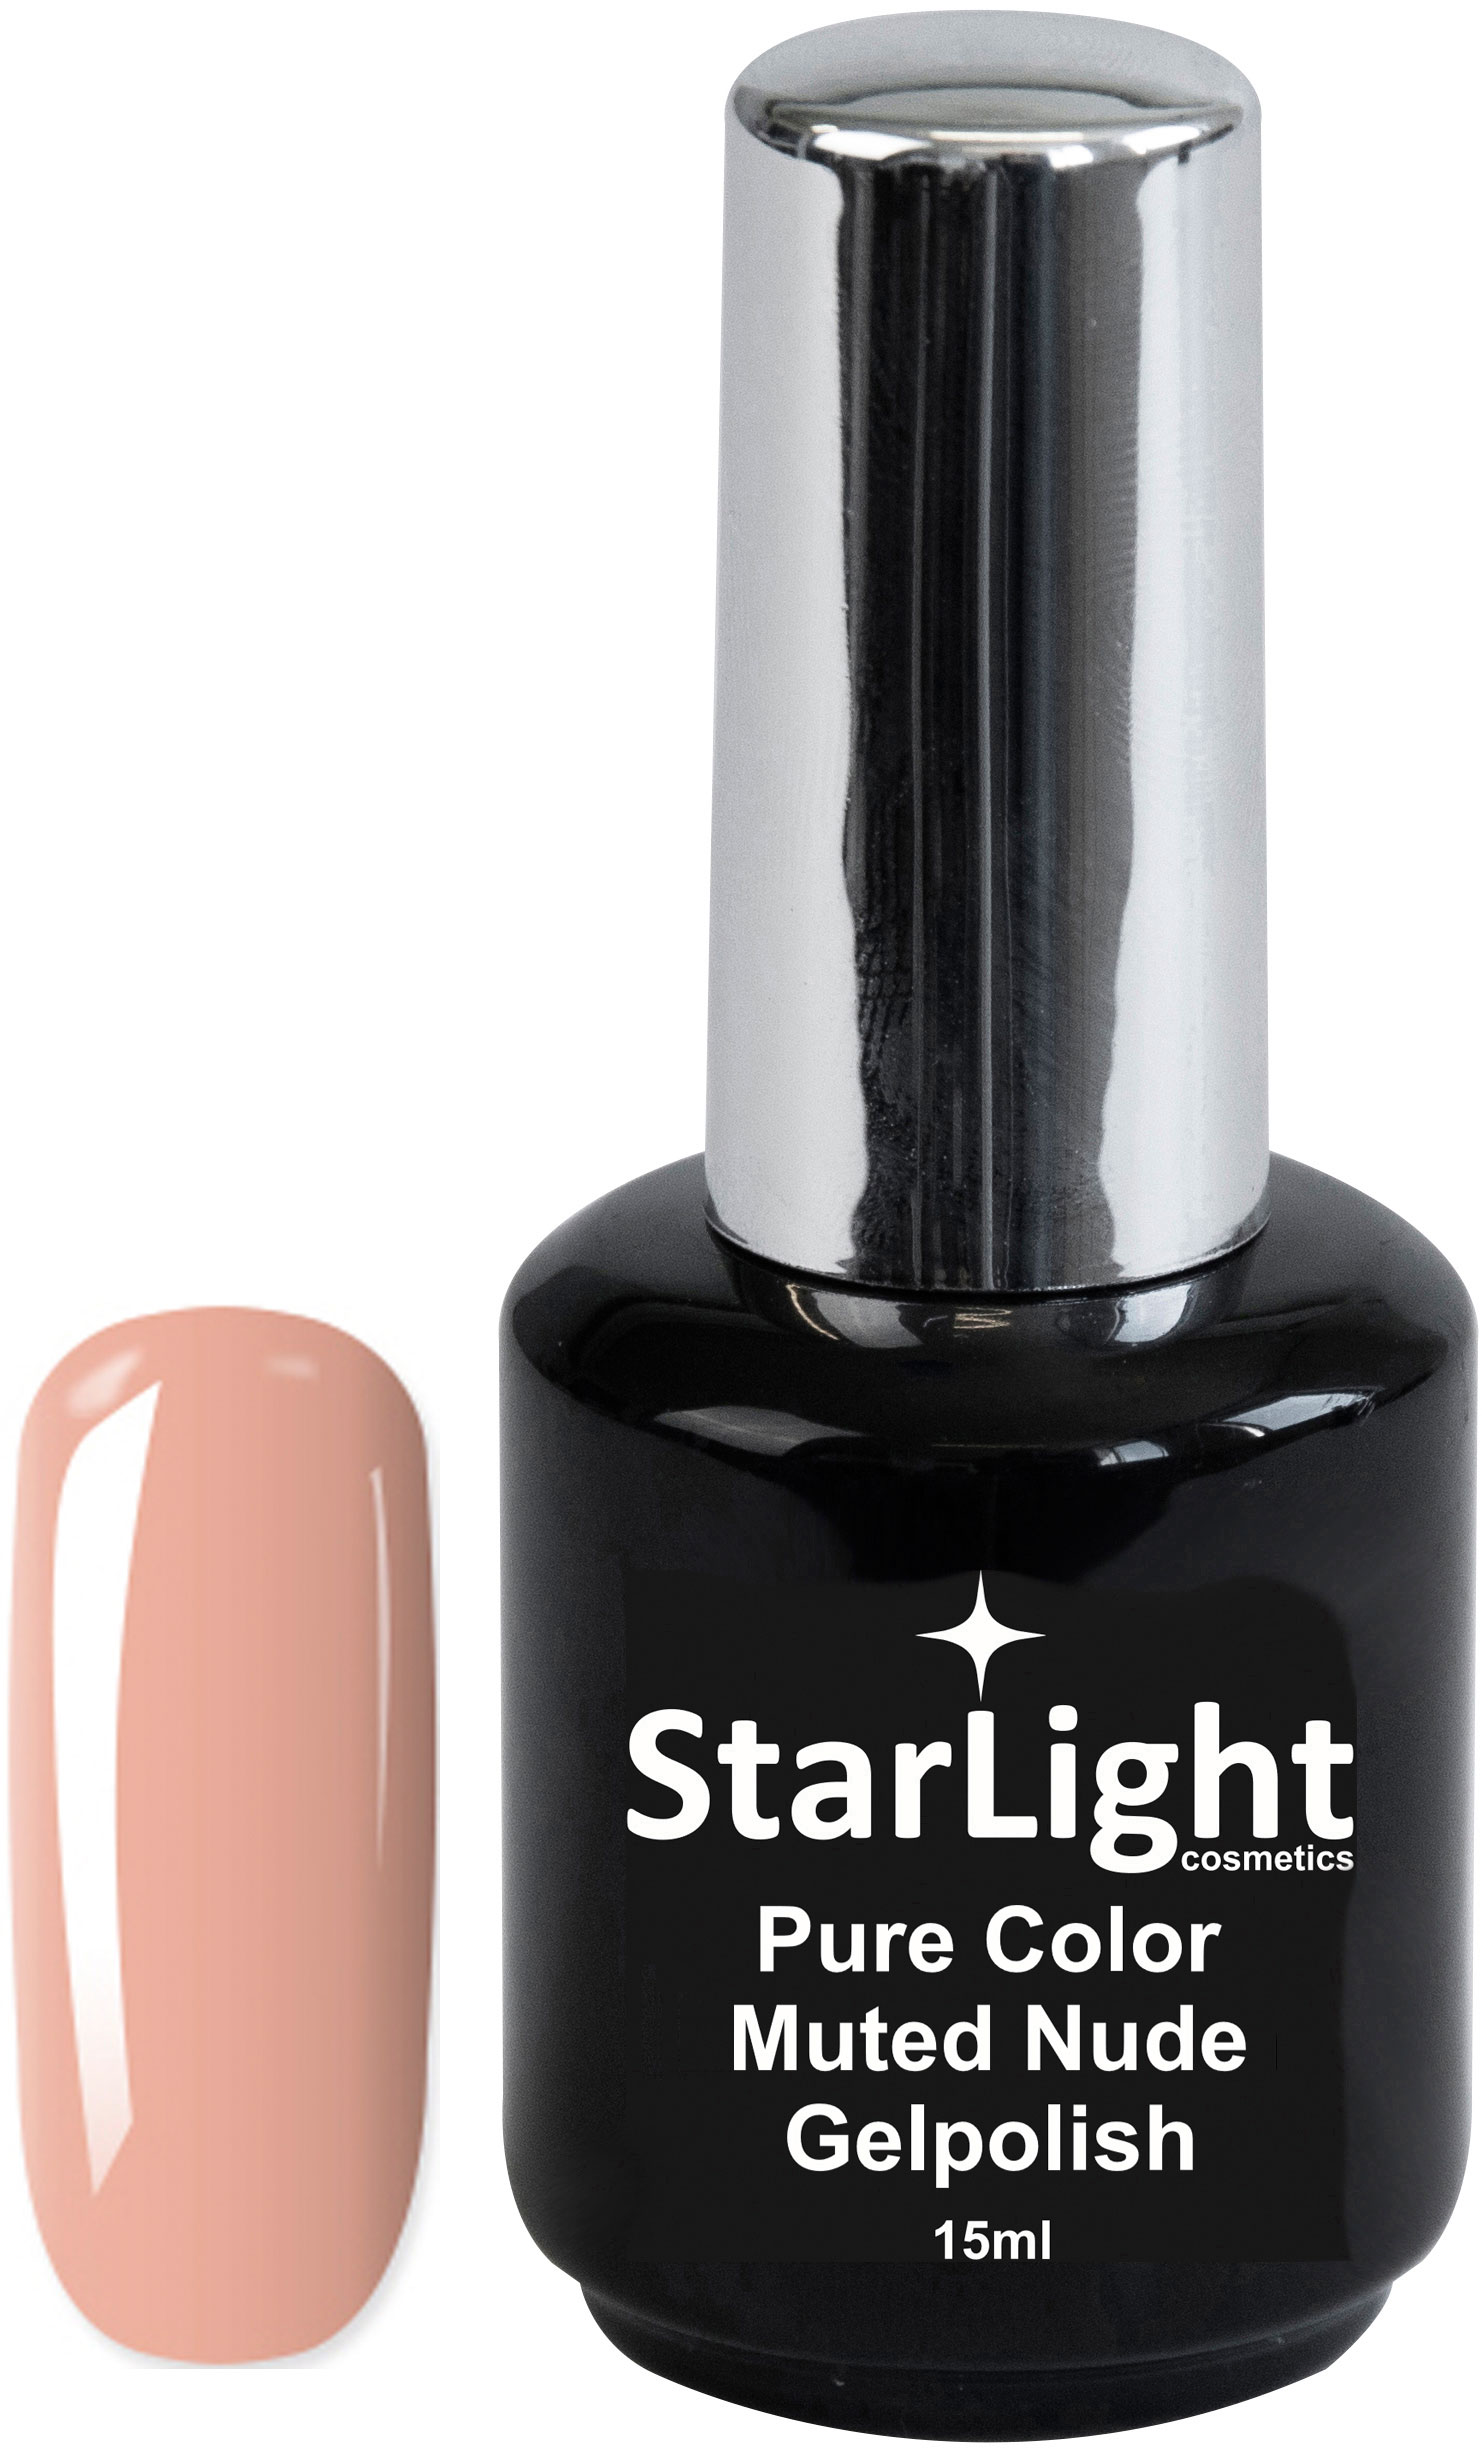 Naglar Gelpolish Pure Color Muted Nude - 15 ml